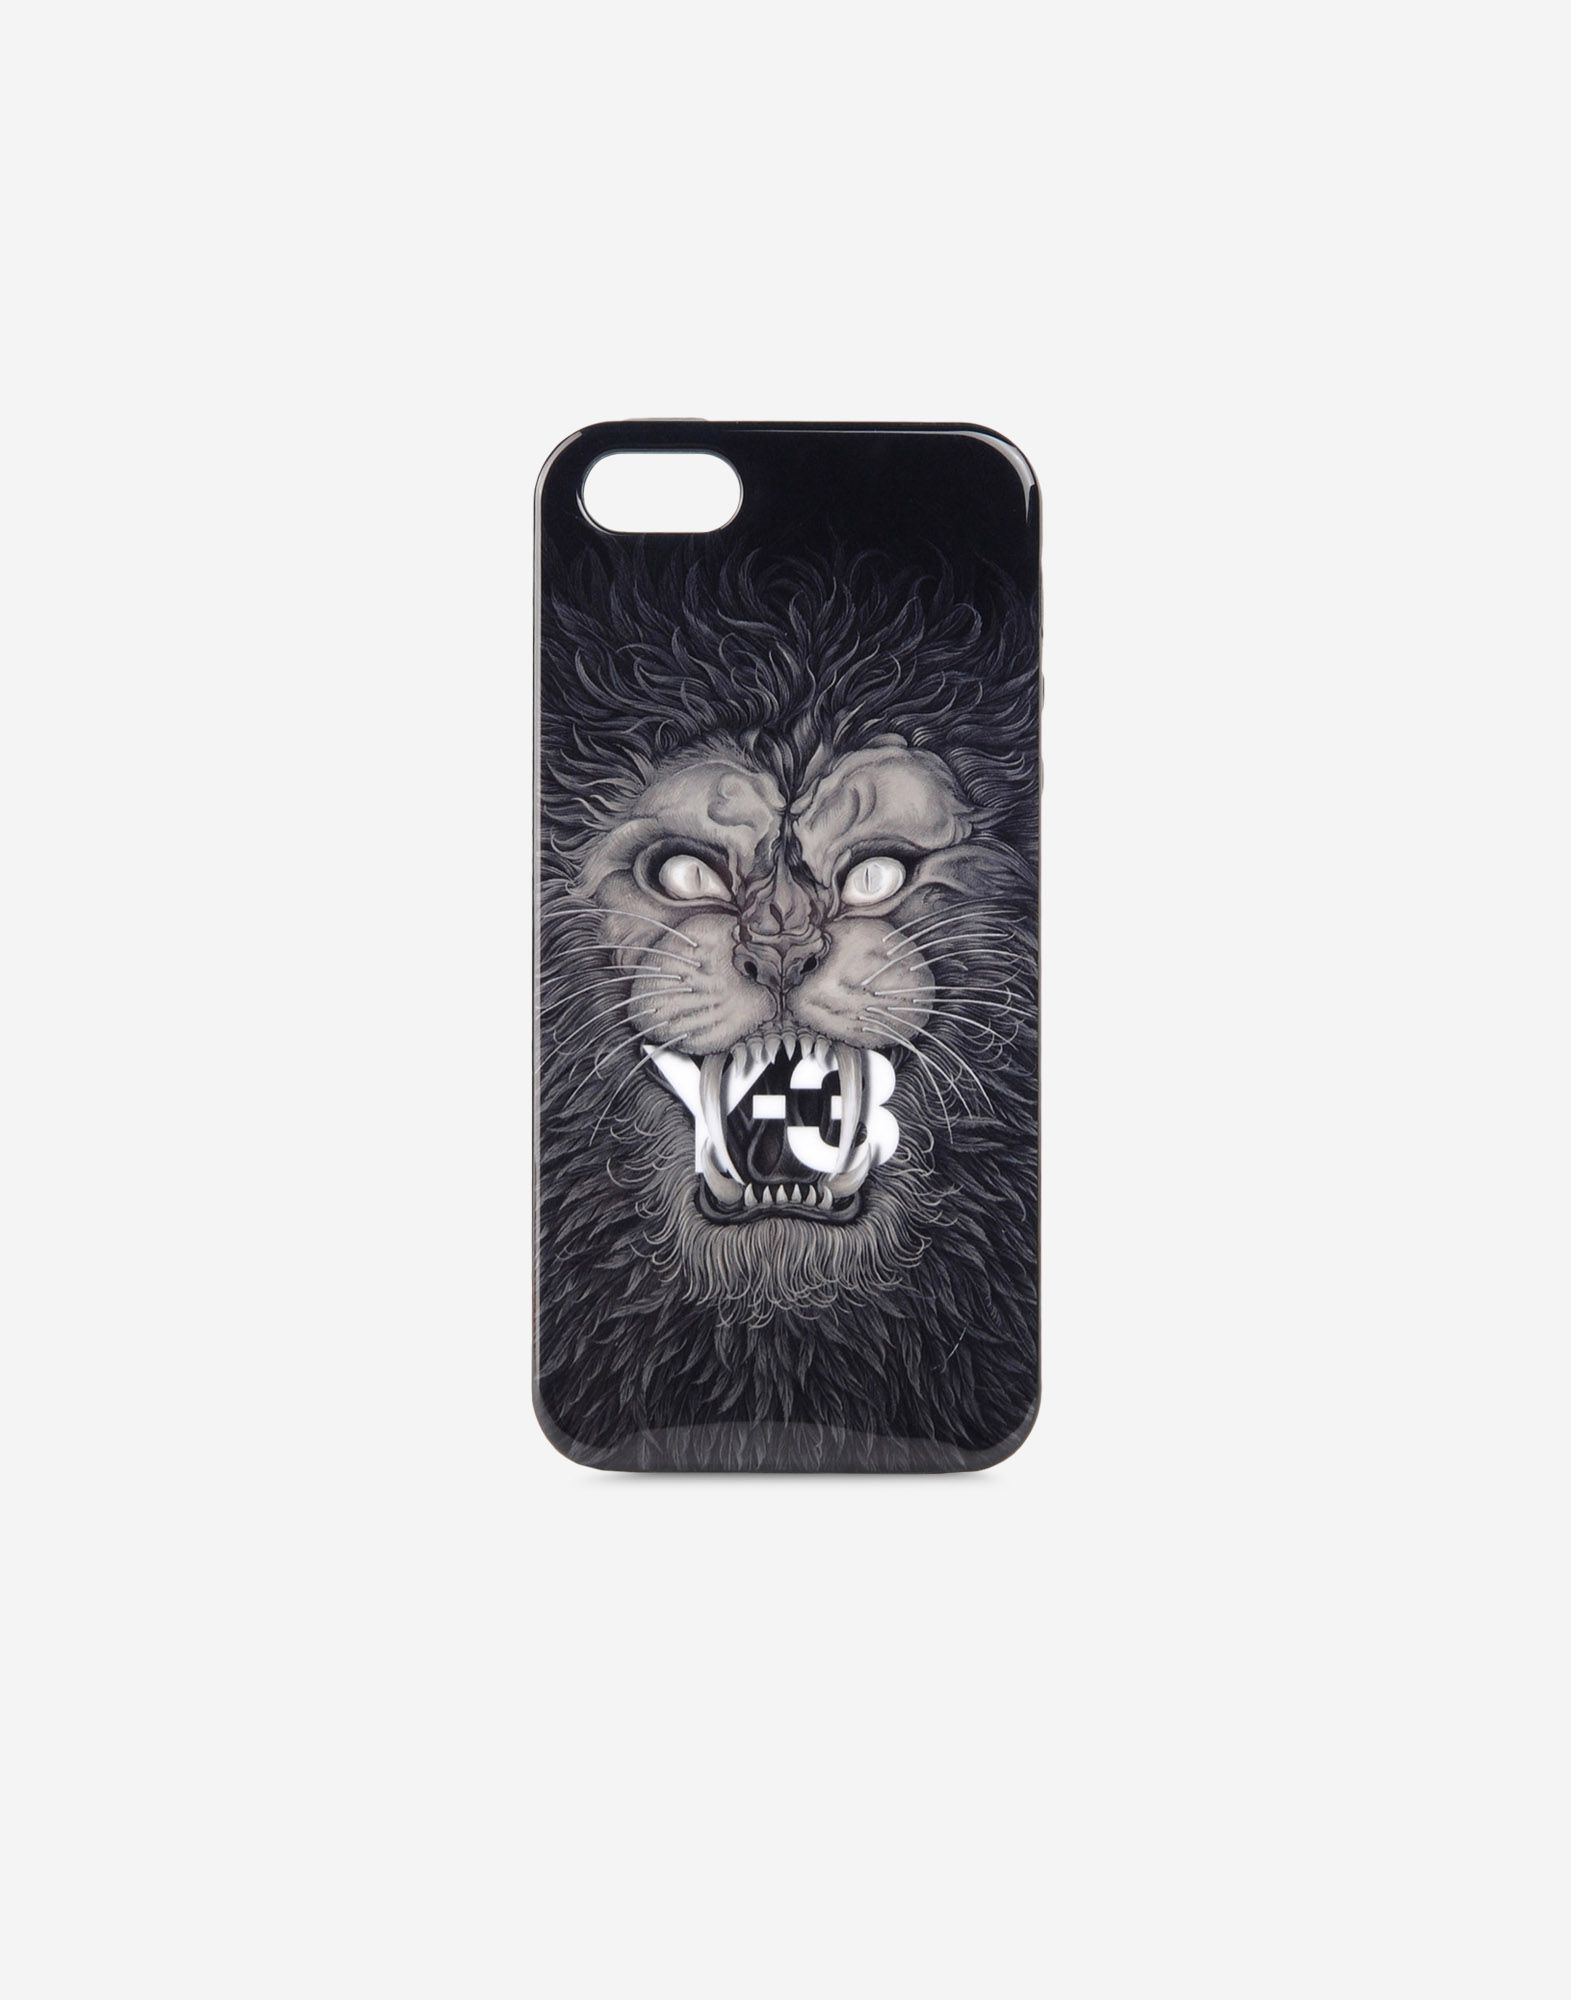 Phone Cases Y 3 Tpu Graphic Iphone 5 5s Case For Women